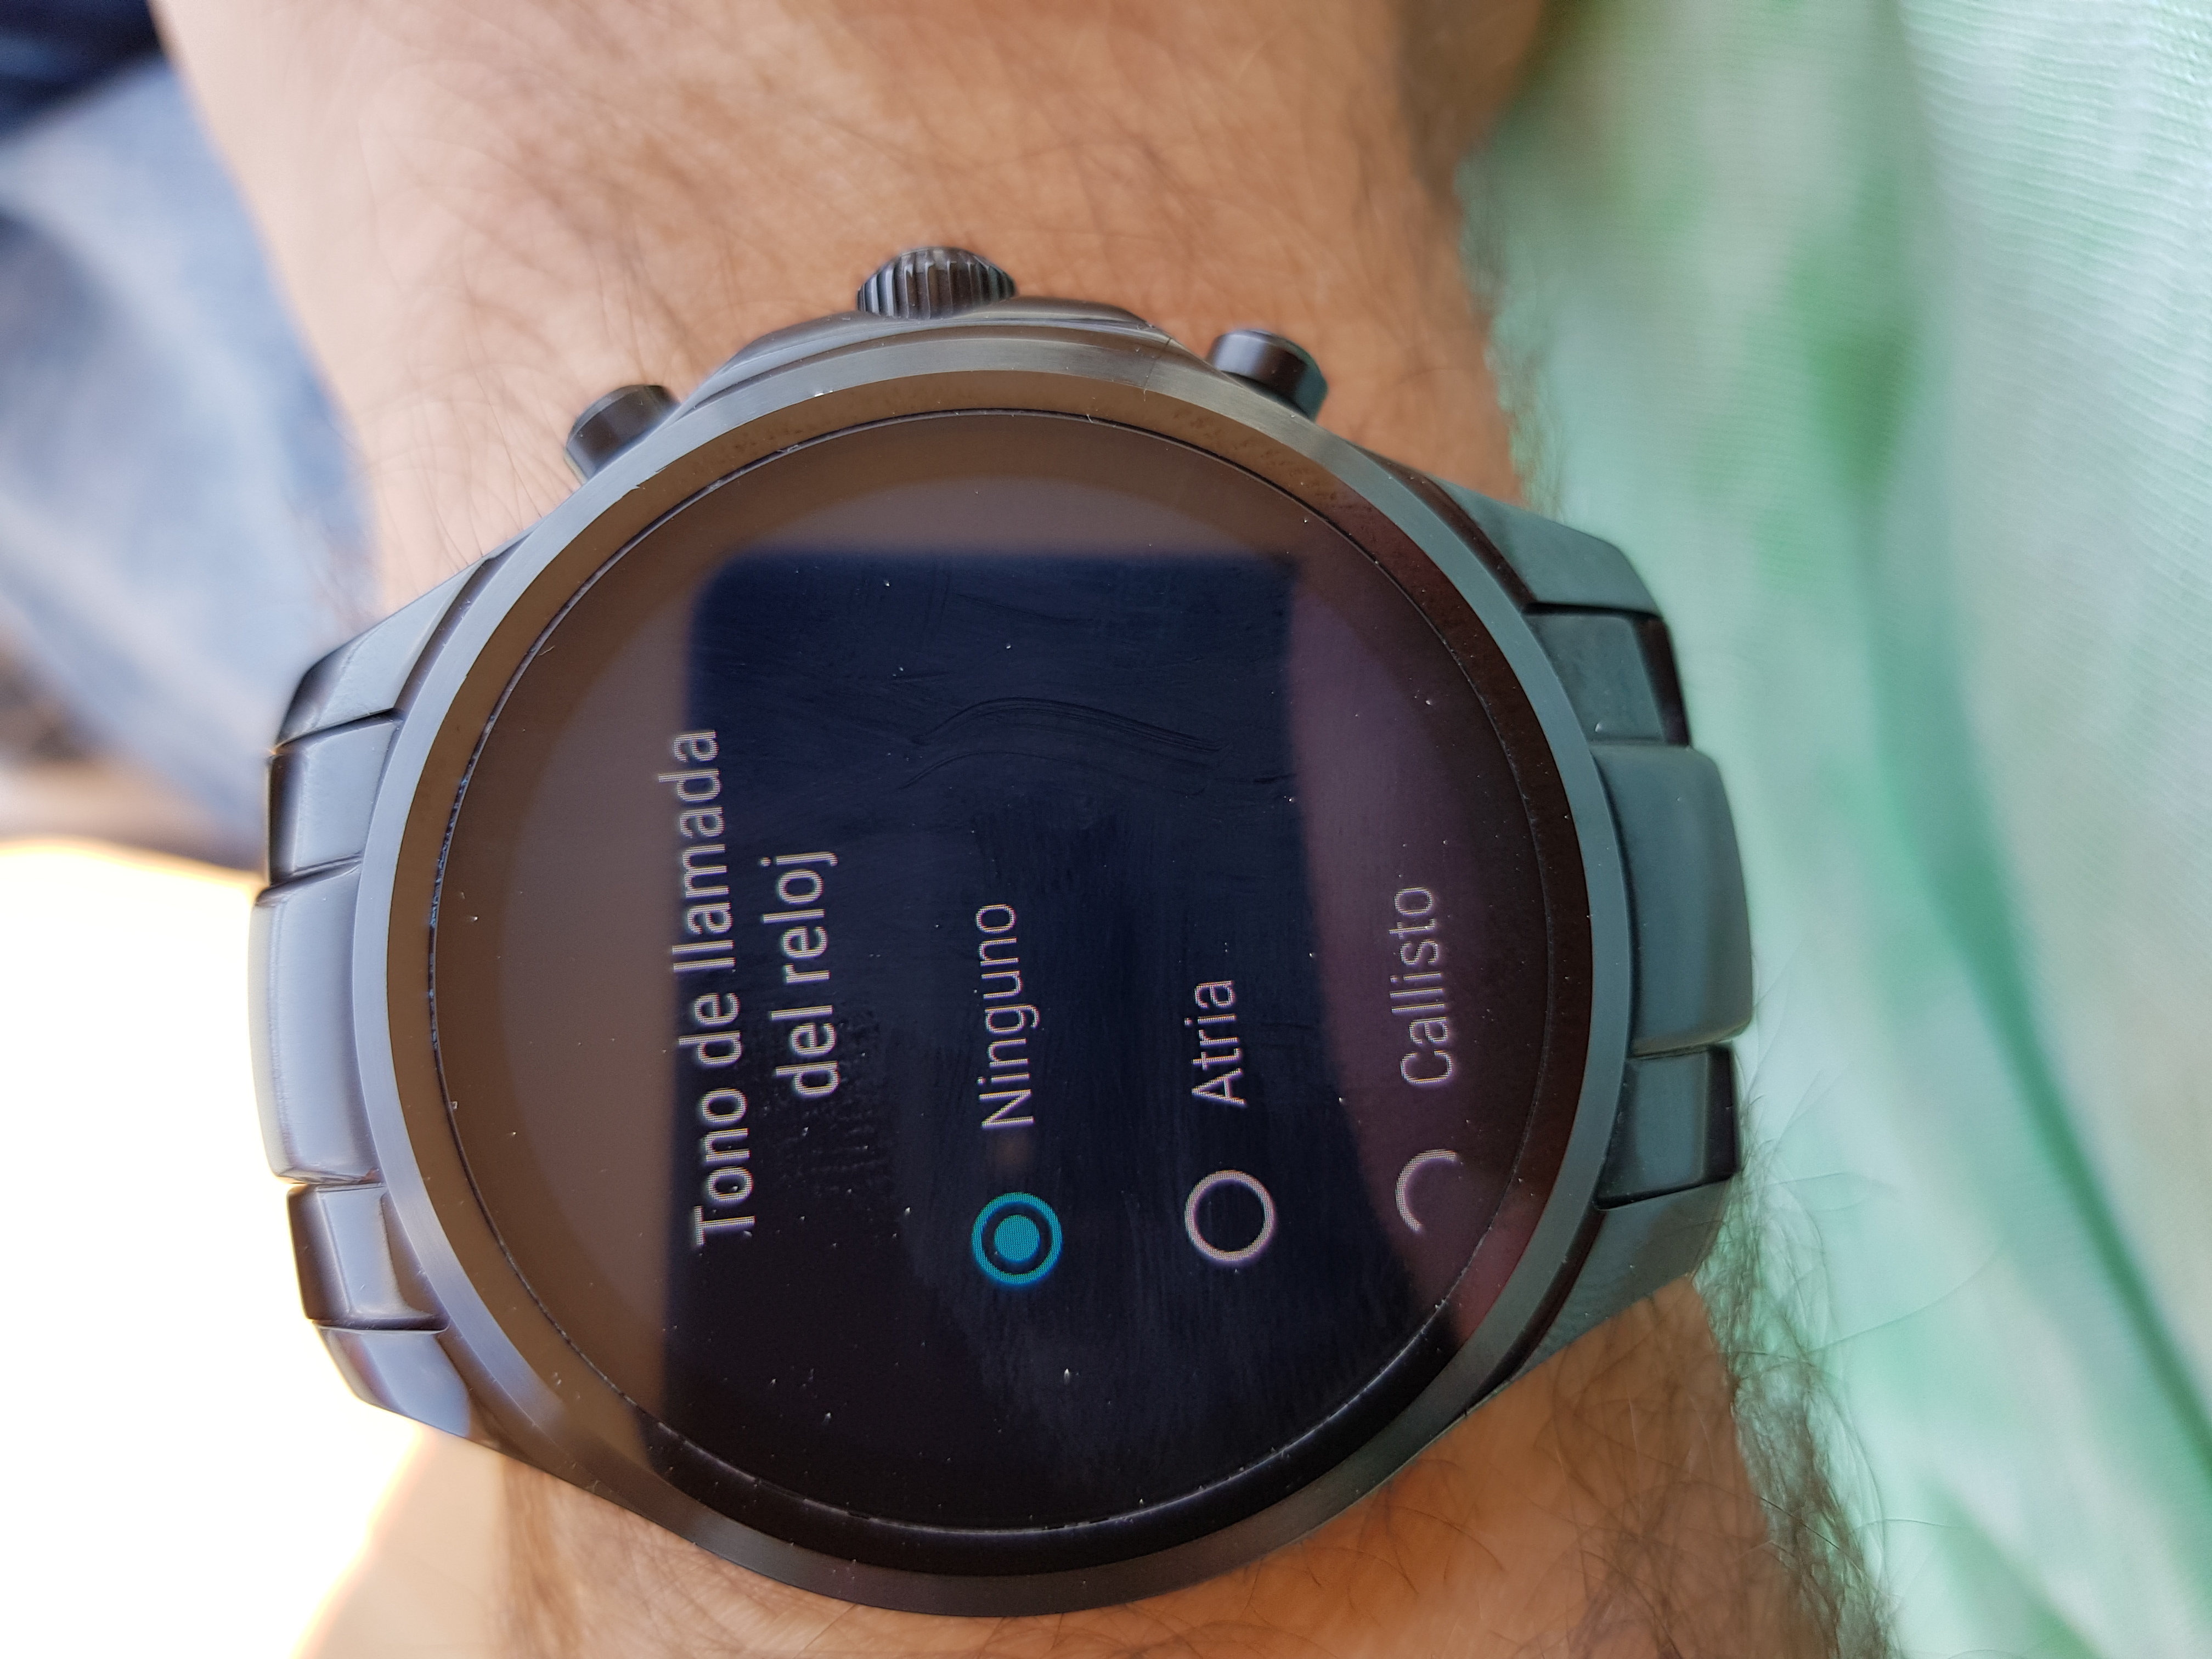 Ho to enable continuous vibrations on my Wear smartwatch